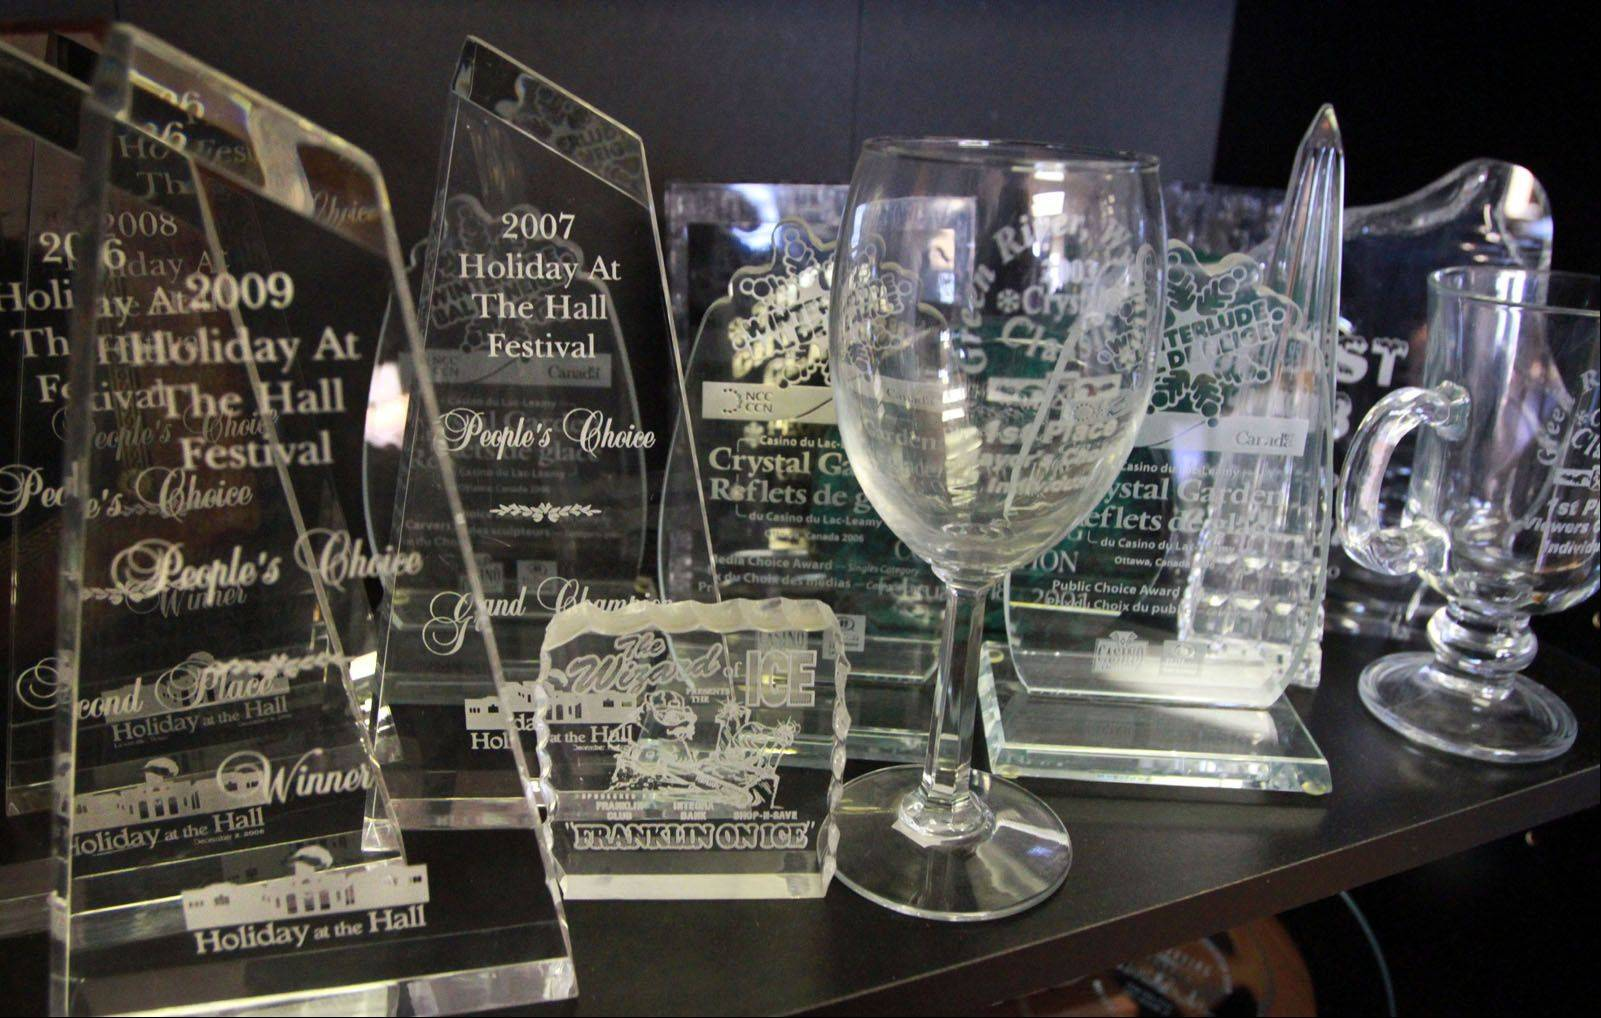 Dan Rebholz's studio office shelves and walls are filled with trophies and awards he has won. He is ranked sixth in the U.S. by the National Ice Carving Association.